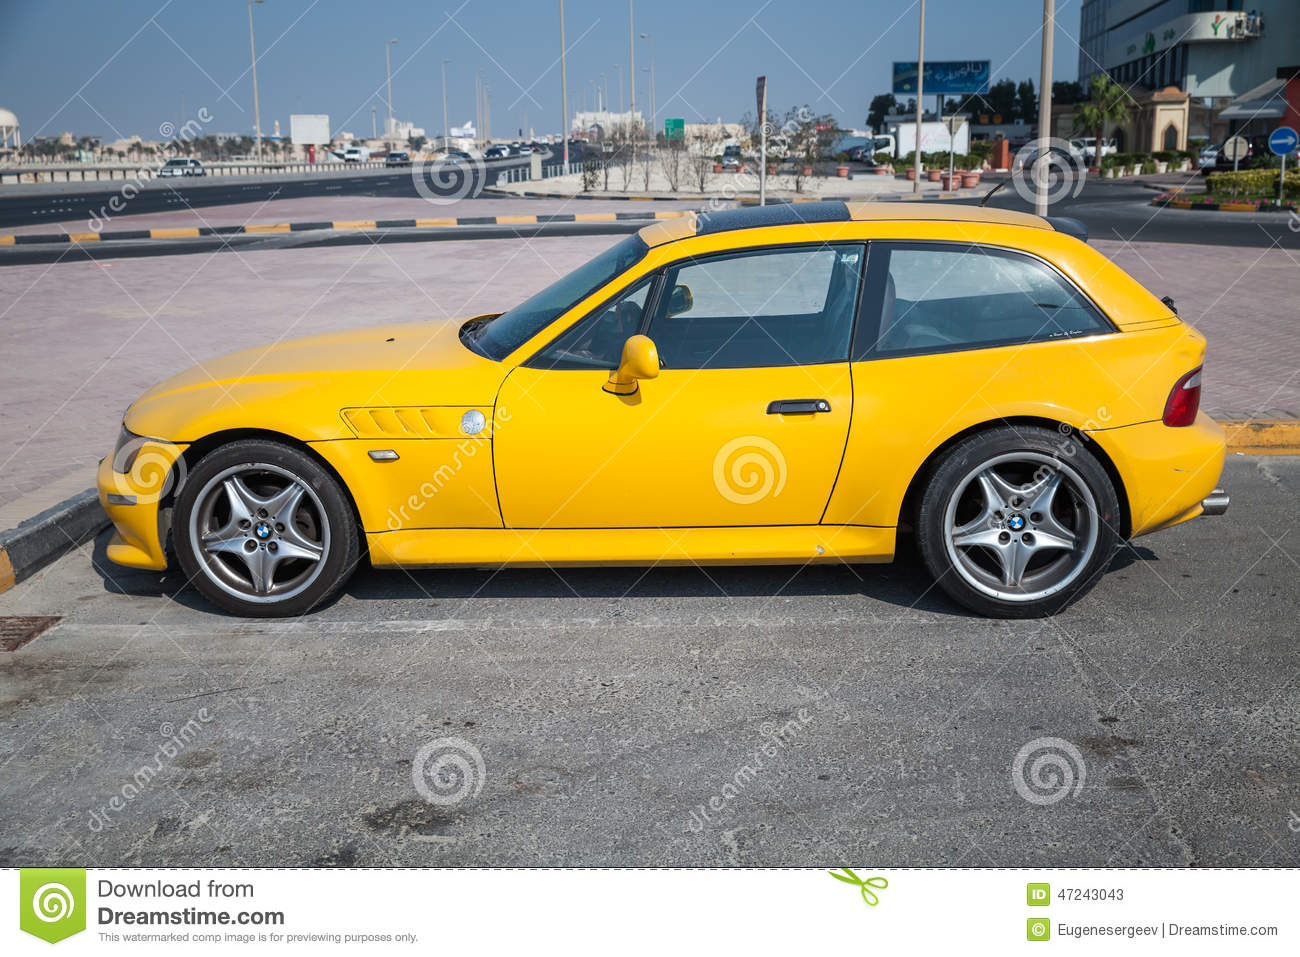 voiture jaune de bmw z3 m coupe photo stock ditorial image 47243043. Black Bedroom Furniture Sets. Home Design Ideas